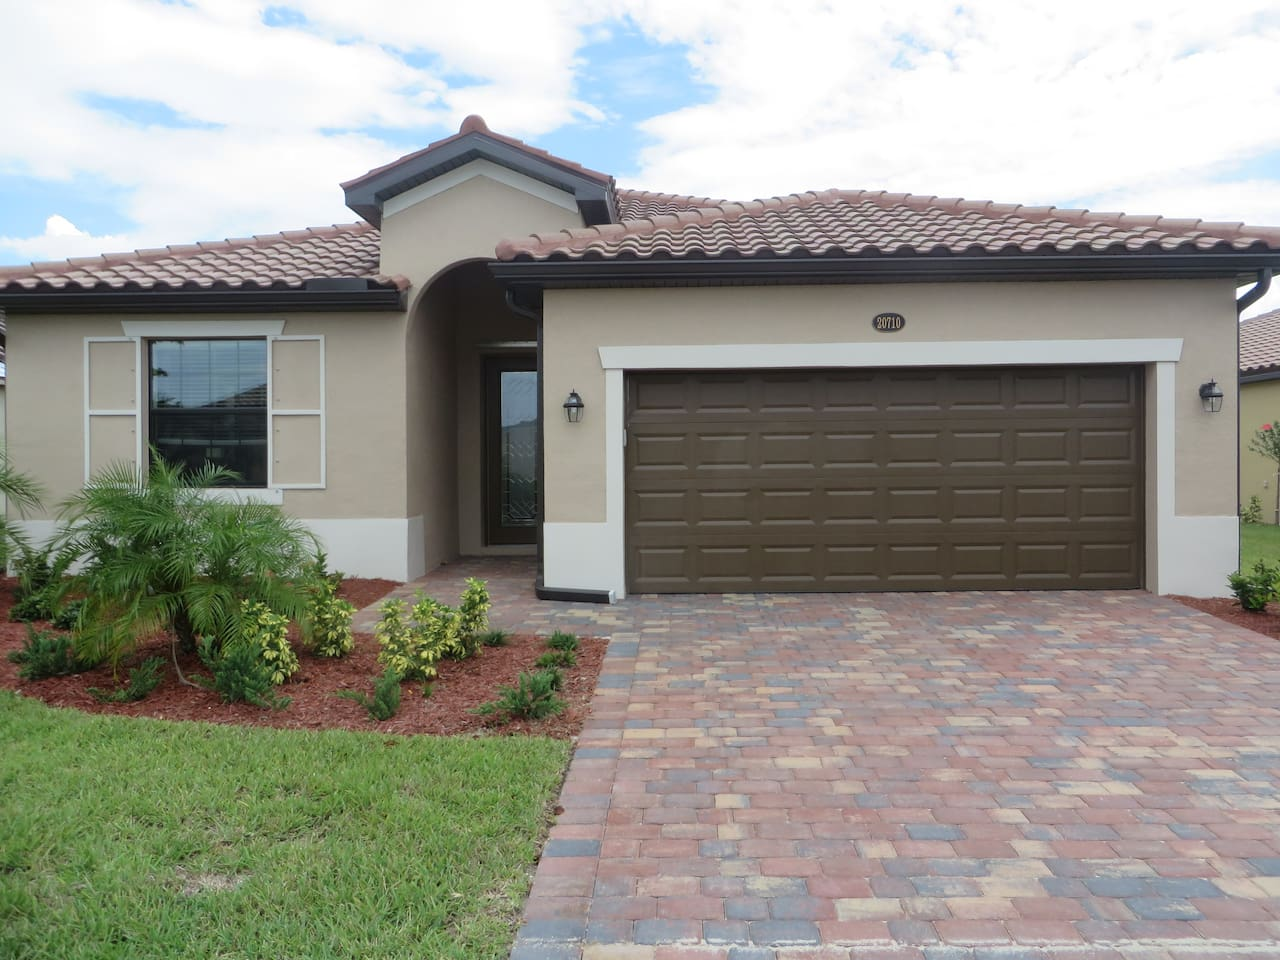 Fully Furnished 3 Bedroom 2 Bath House in Venice Florida